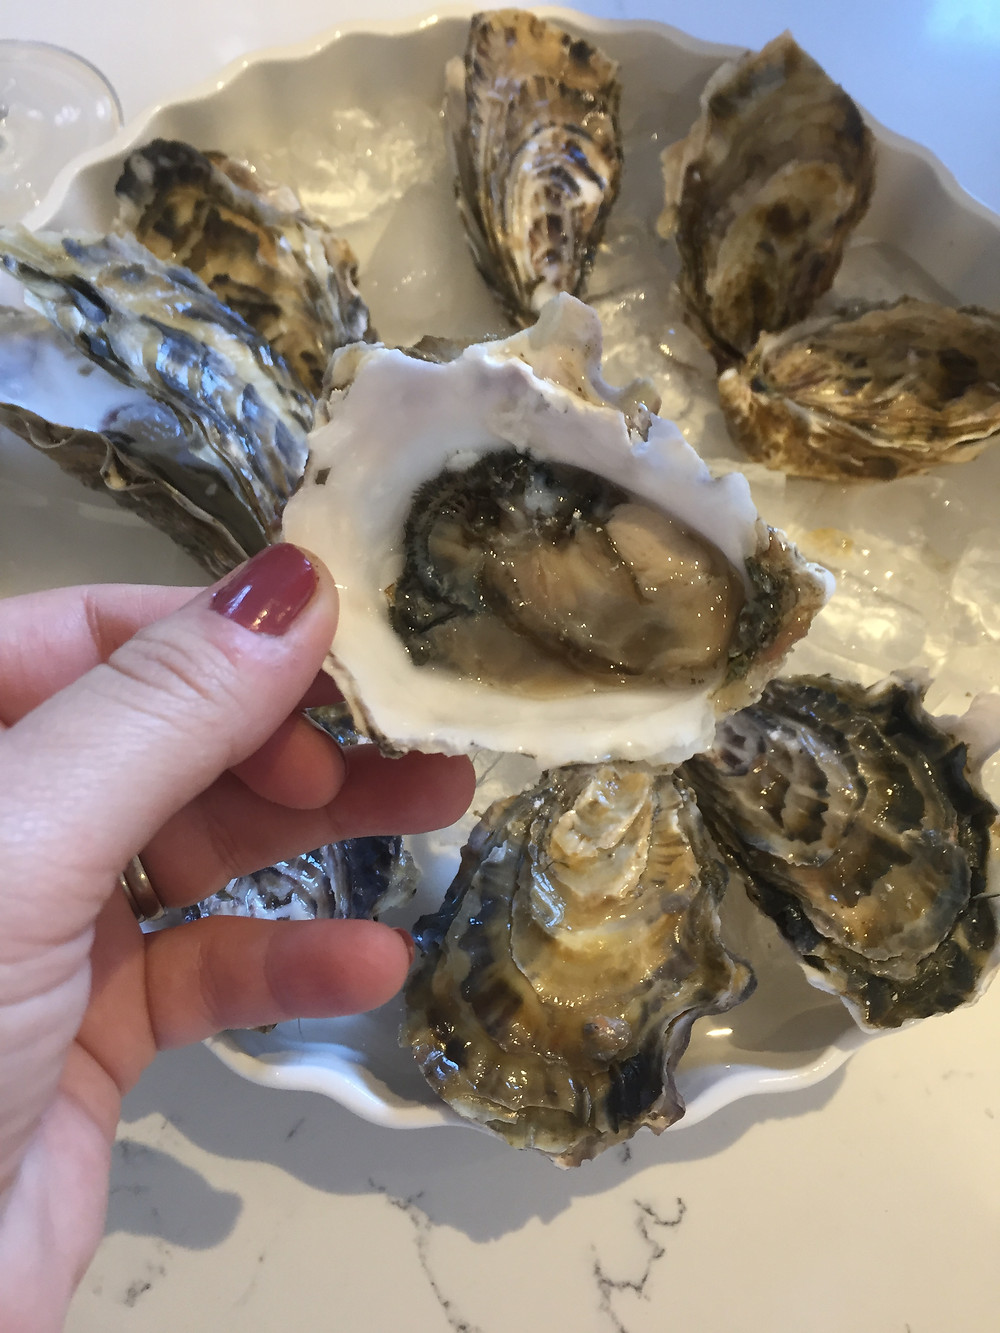 Shucked Oyster. Ready to be eaten